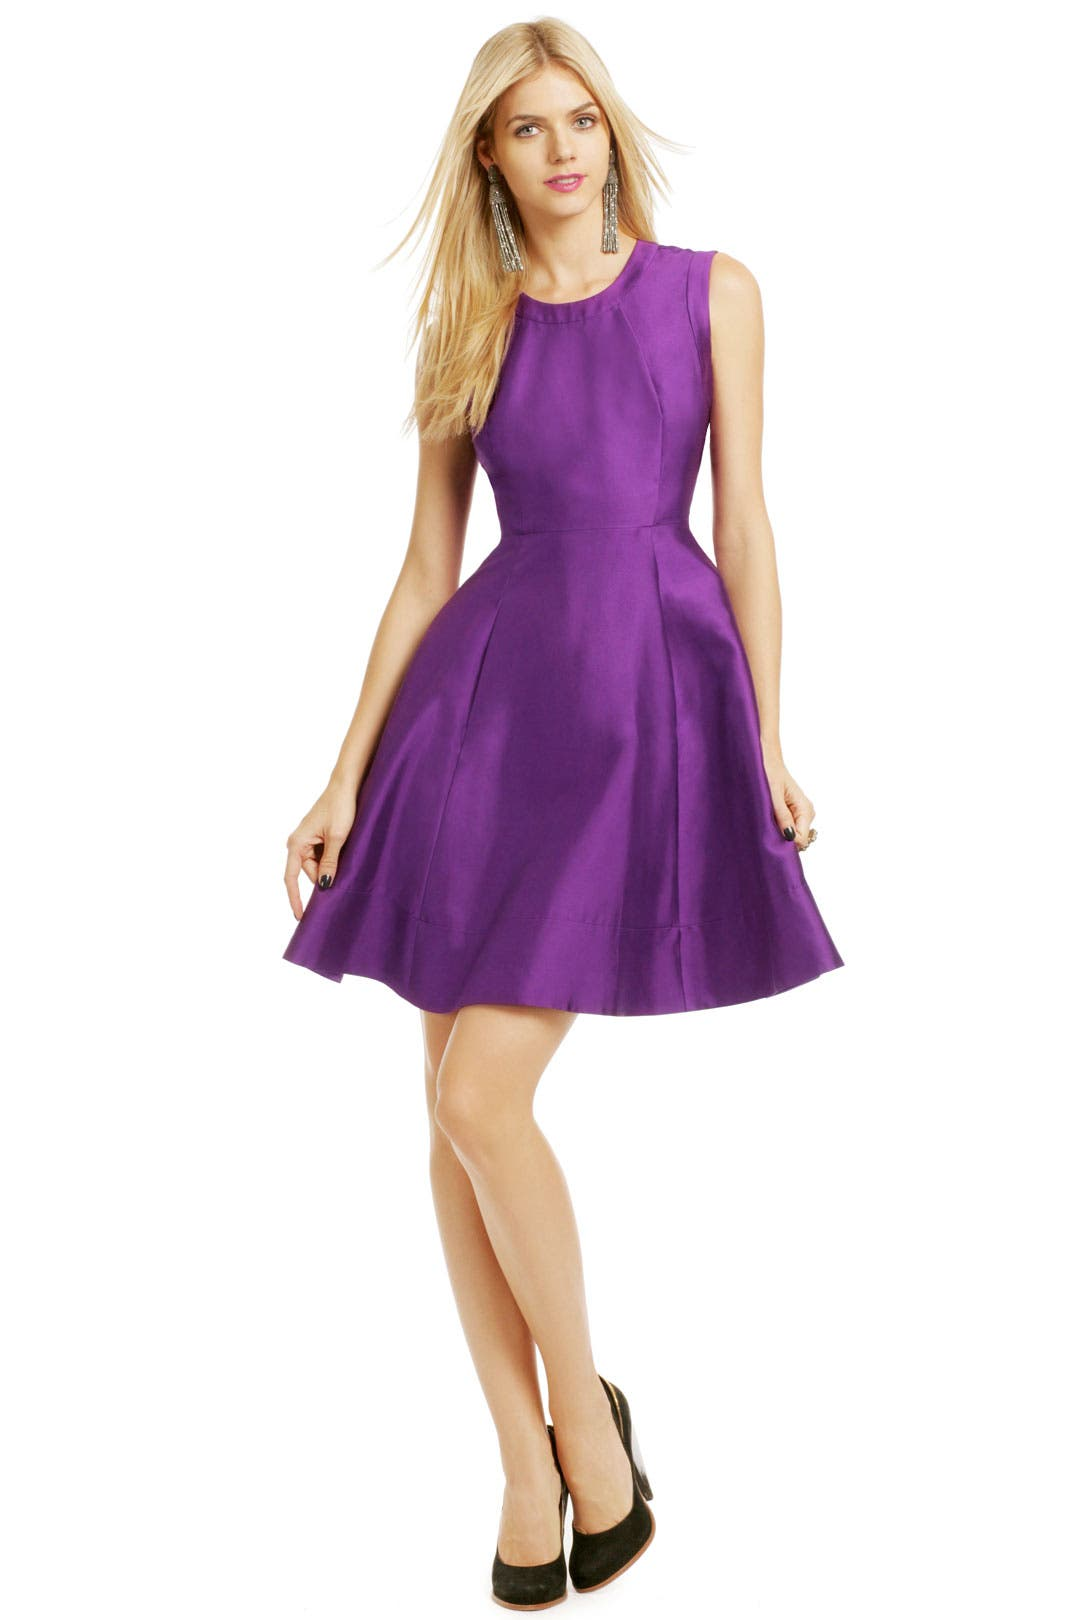 Grape Soda Pop Dress by kate spade new york